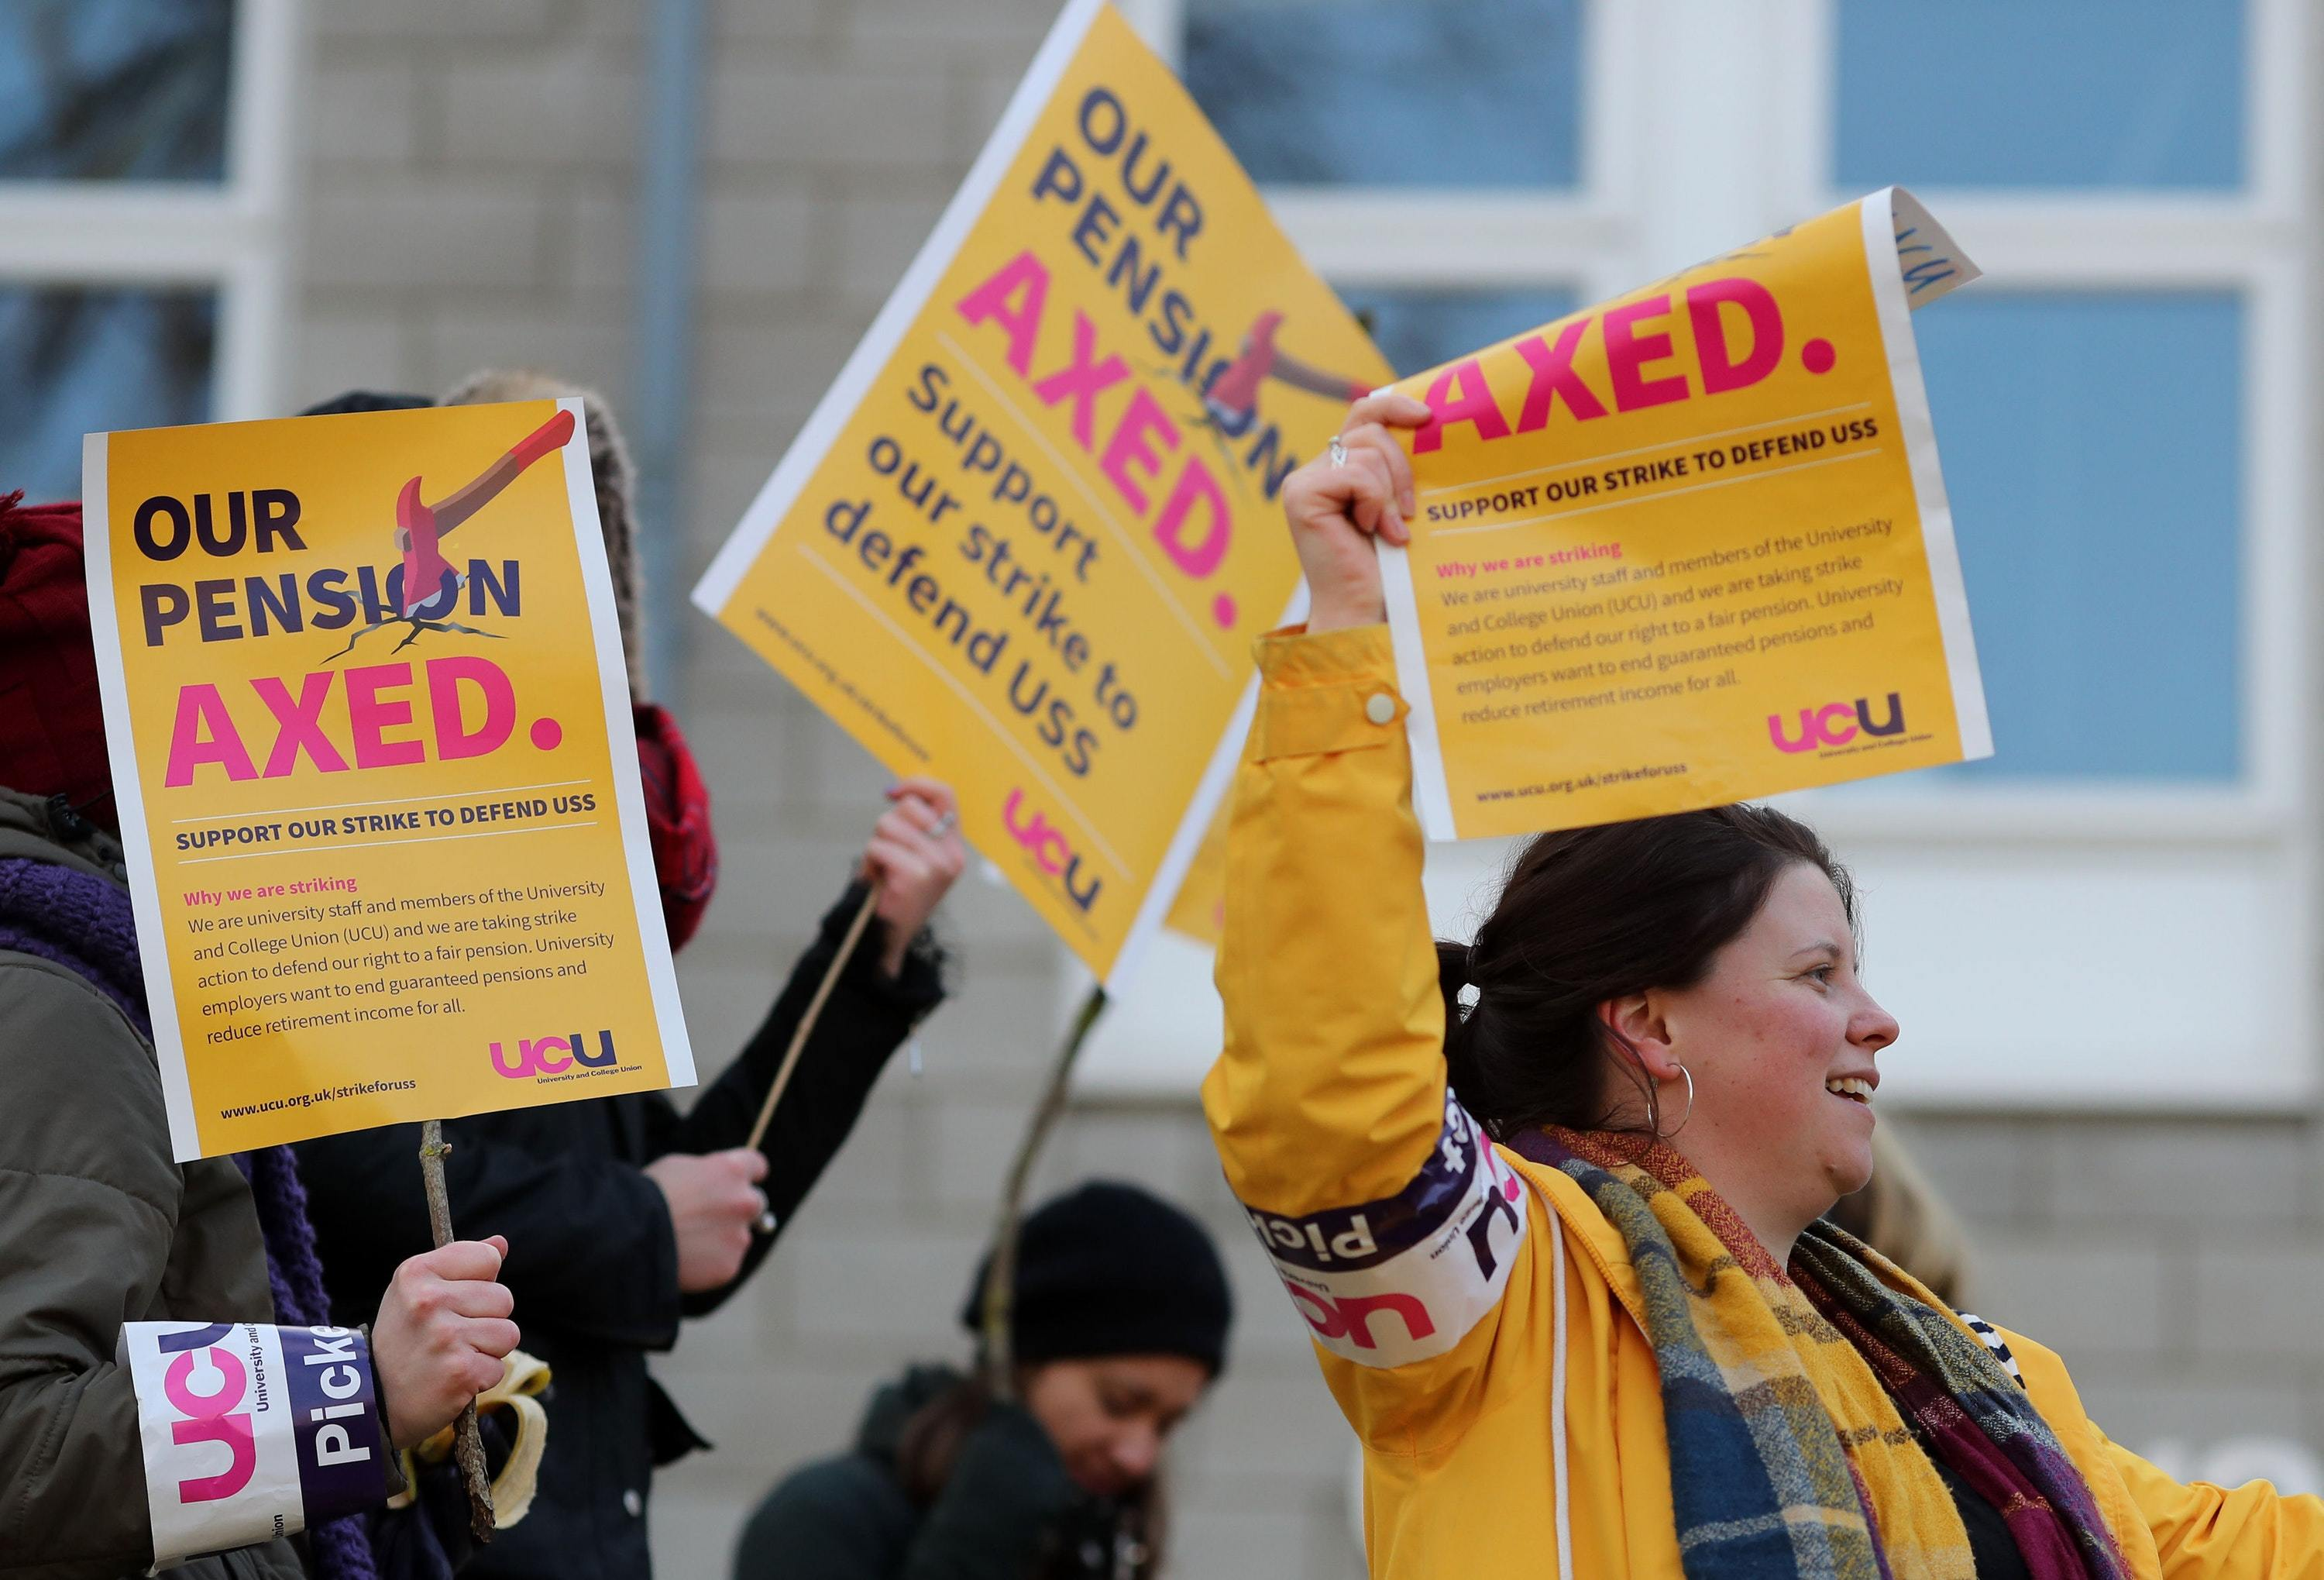 Members of the University and College Union on strike outside the University of Kent campus in Canterbury (Gareth Fuller/PA)